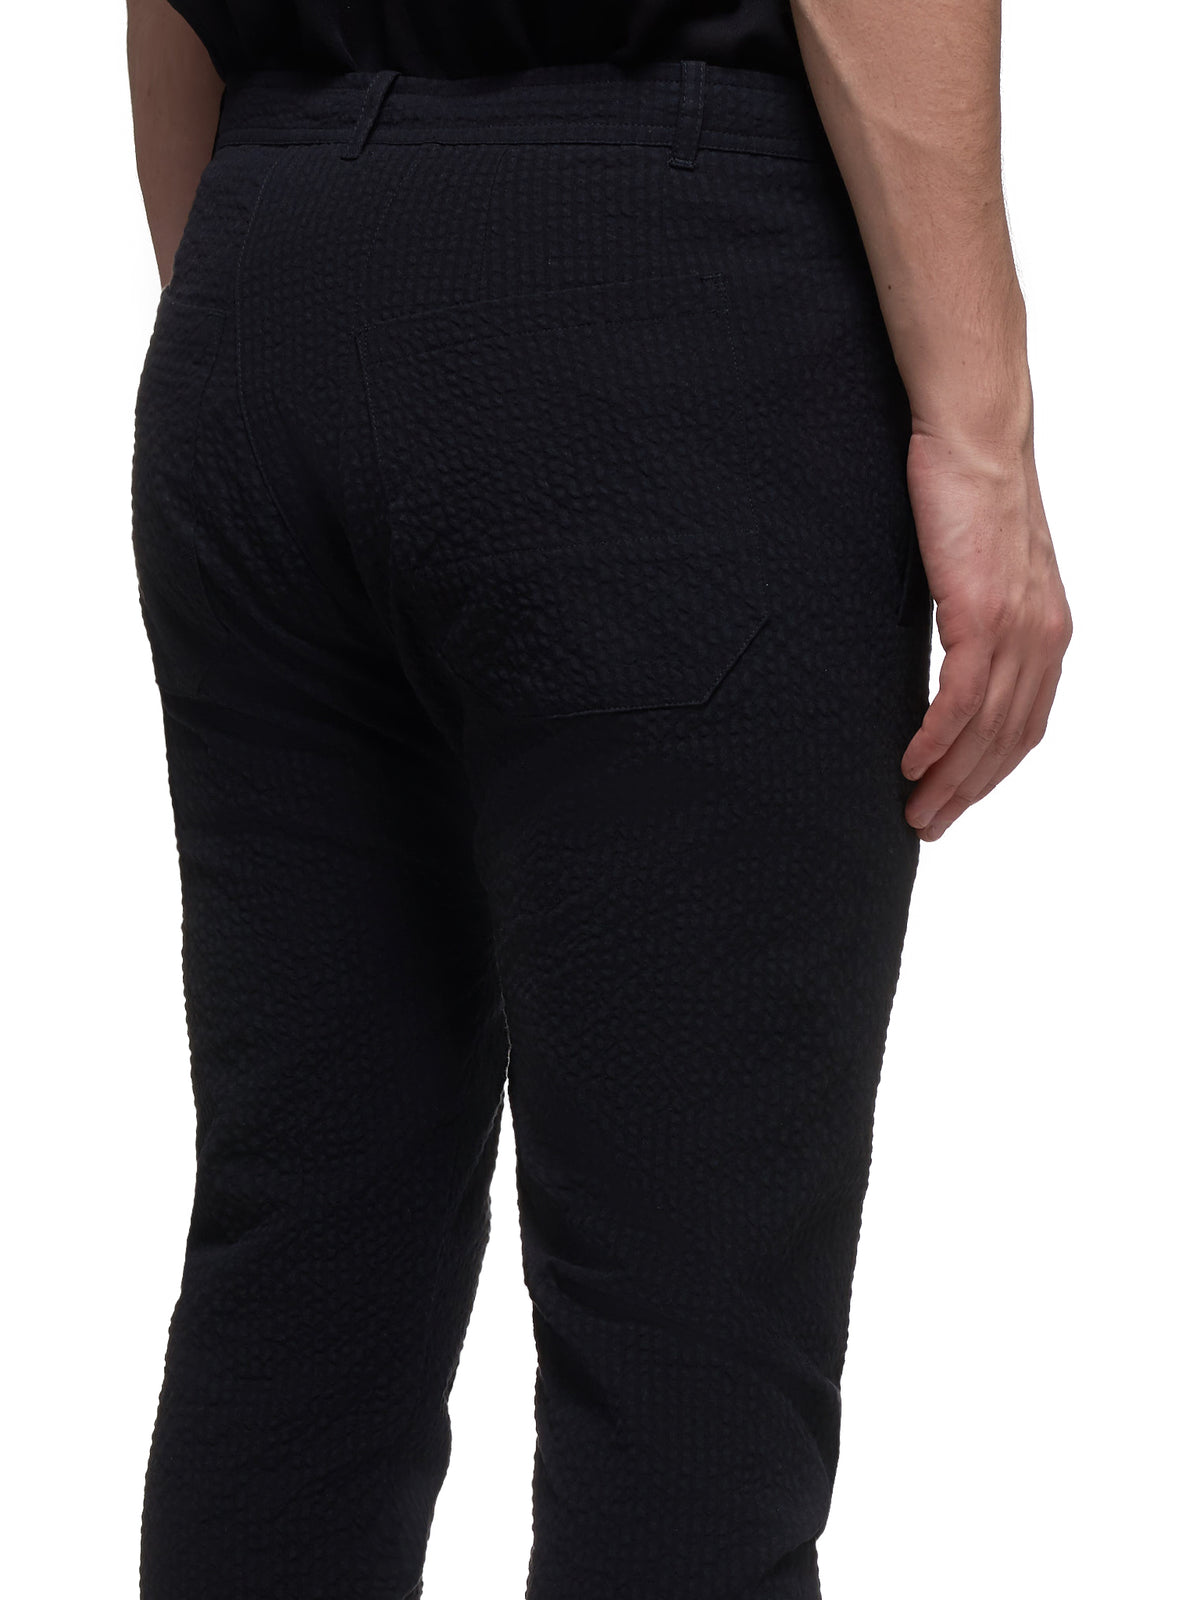 Checked Seersucker Trousers (TROUSERS-49-SEERSUCKER-BLACK)